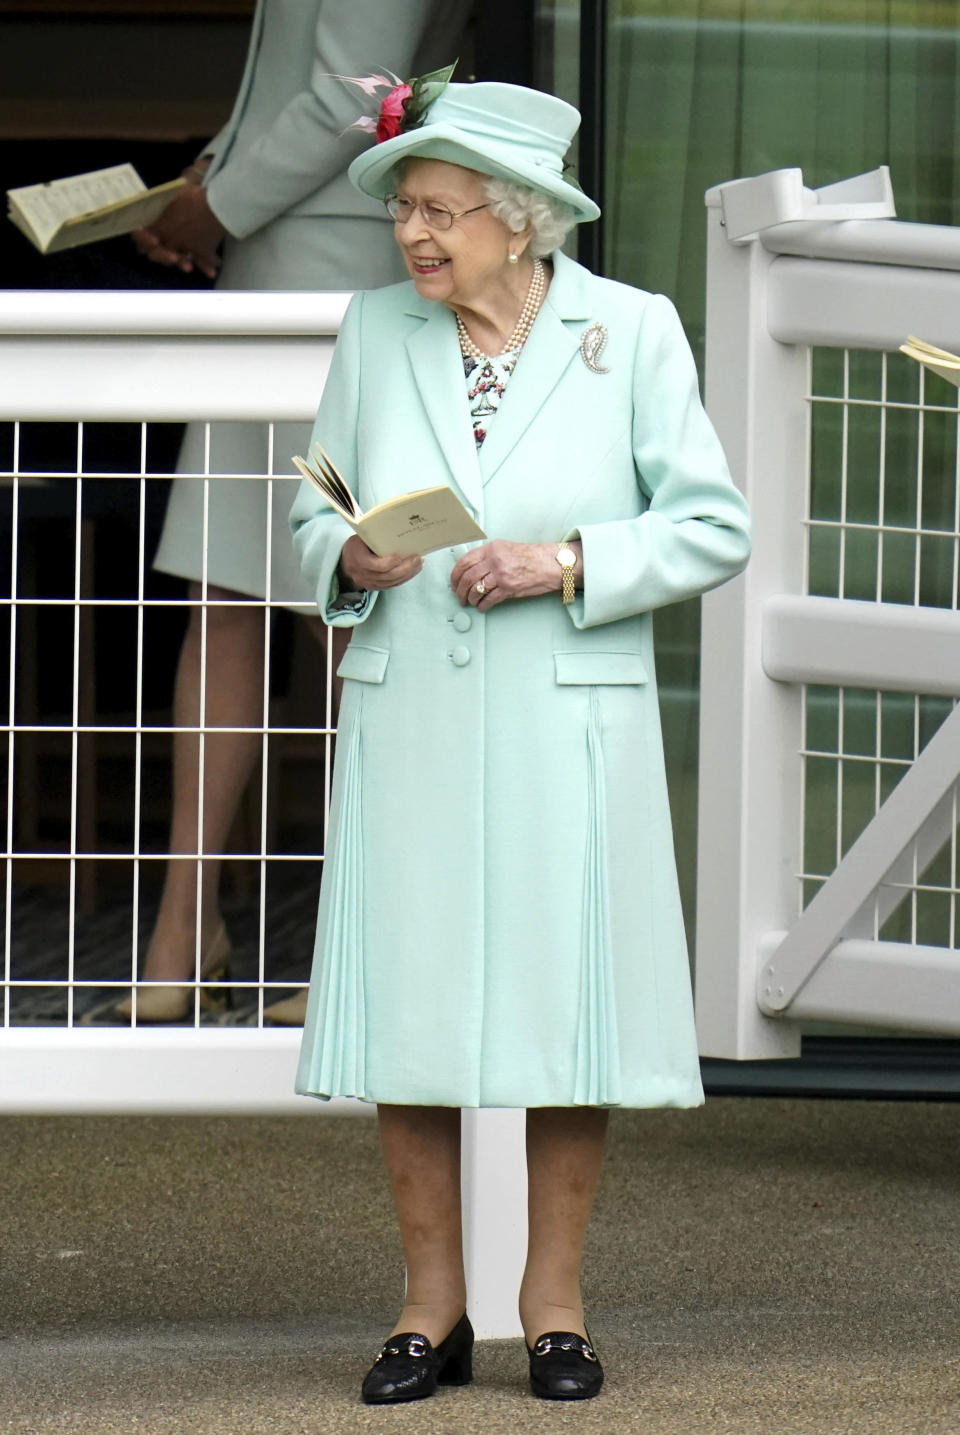 Britain's Queen Elizabeth II looks on, during day five of of the Royal Ascot horserace meeting, at Ascot Racecourse, in Ascot, England, Saturday June 19, 2021. (Andrew Matthews/PA via AP)